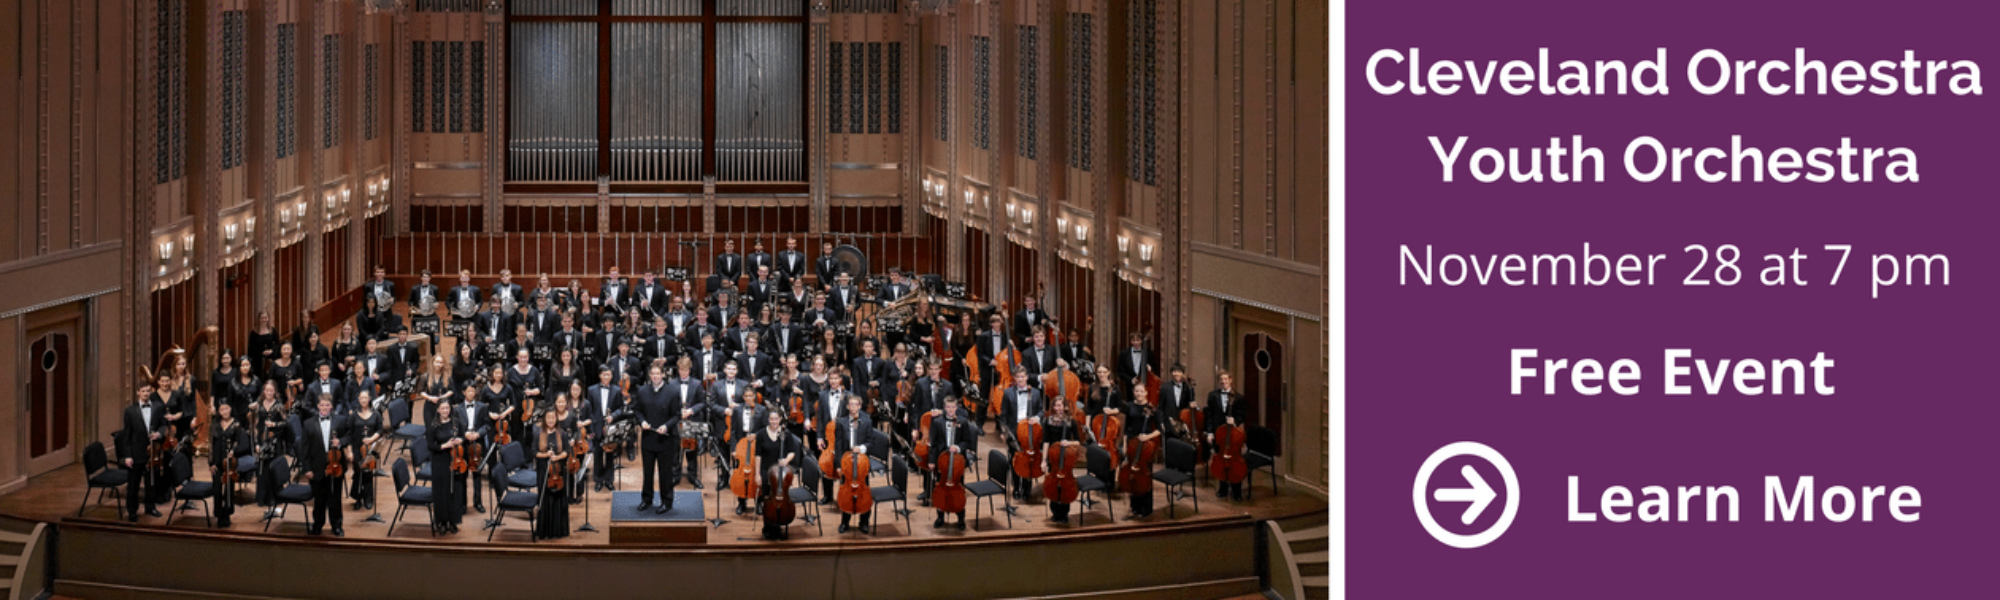 Cleveland Orchestra Youth Orchestra